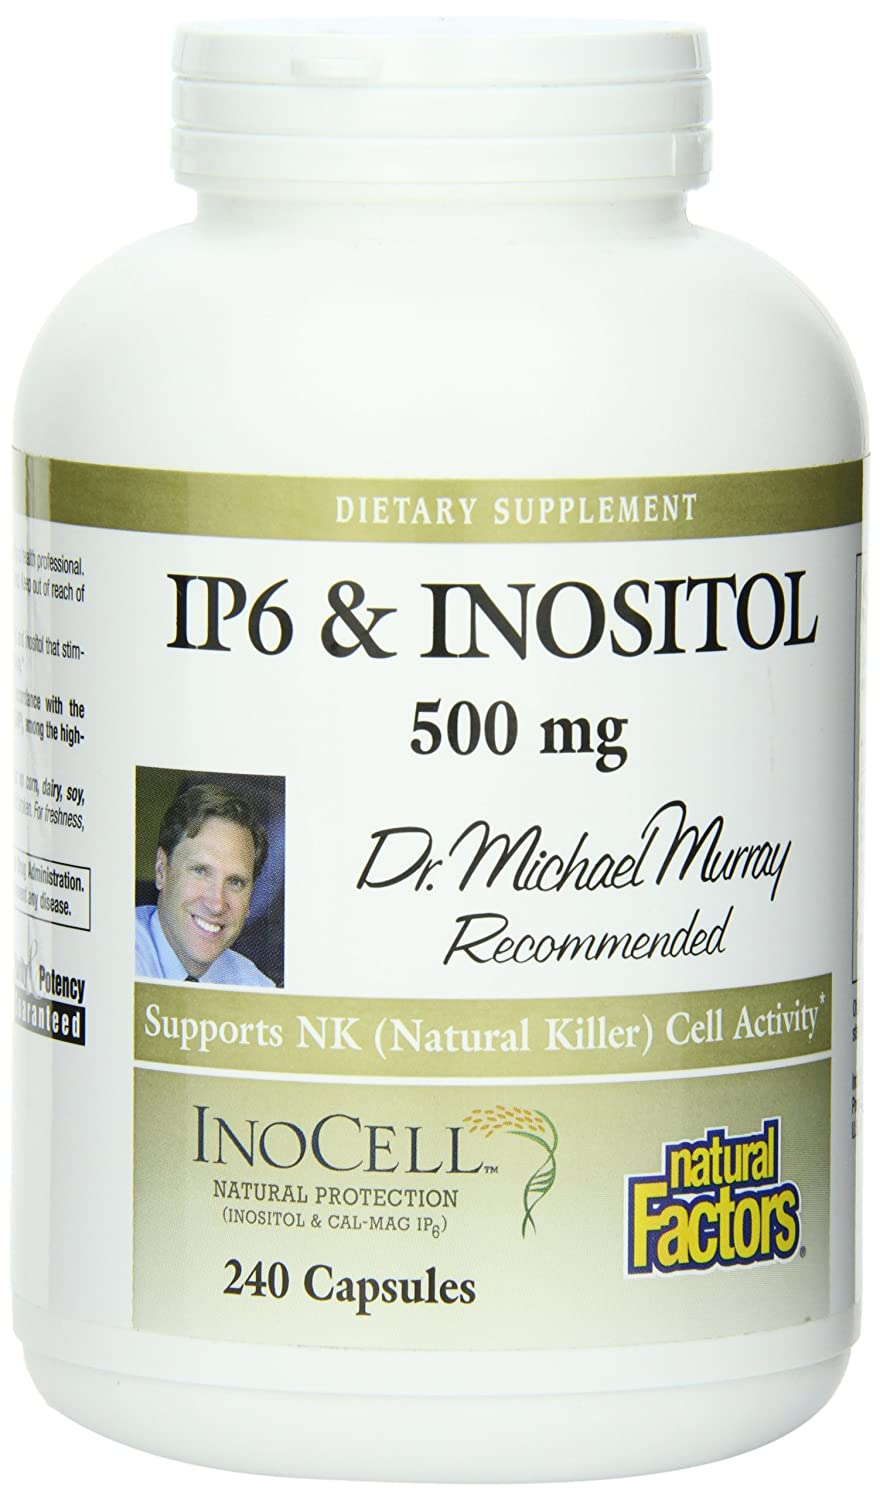 Buy Natural Factors, IP6 & Inositol, 500 mg, 240 Capsules